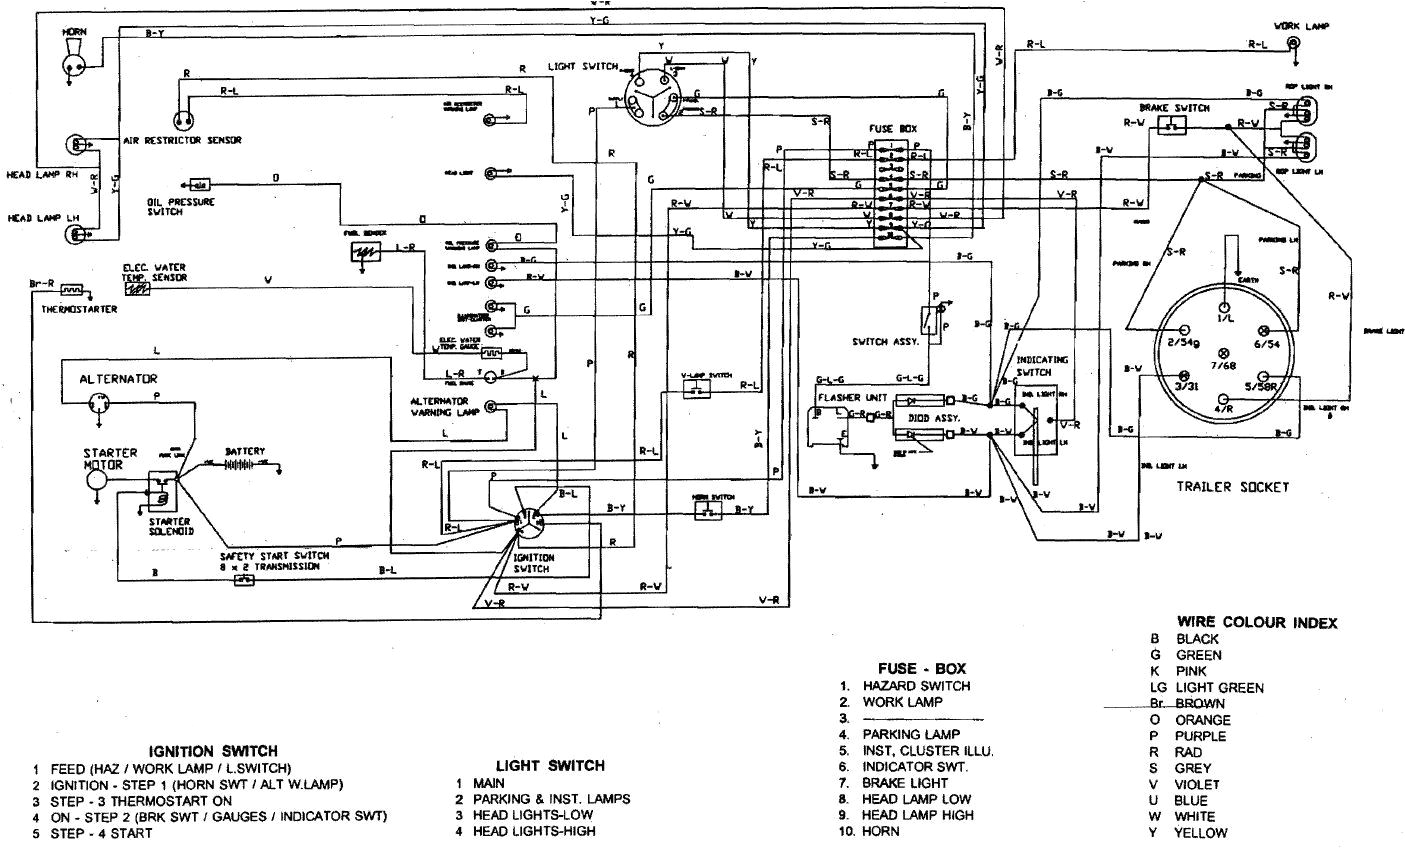 kubota l2850 wiring diagram wiring diagram autovehicle kubota l2250 wiring diagram kubota l2250 wiring diagram